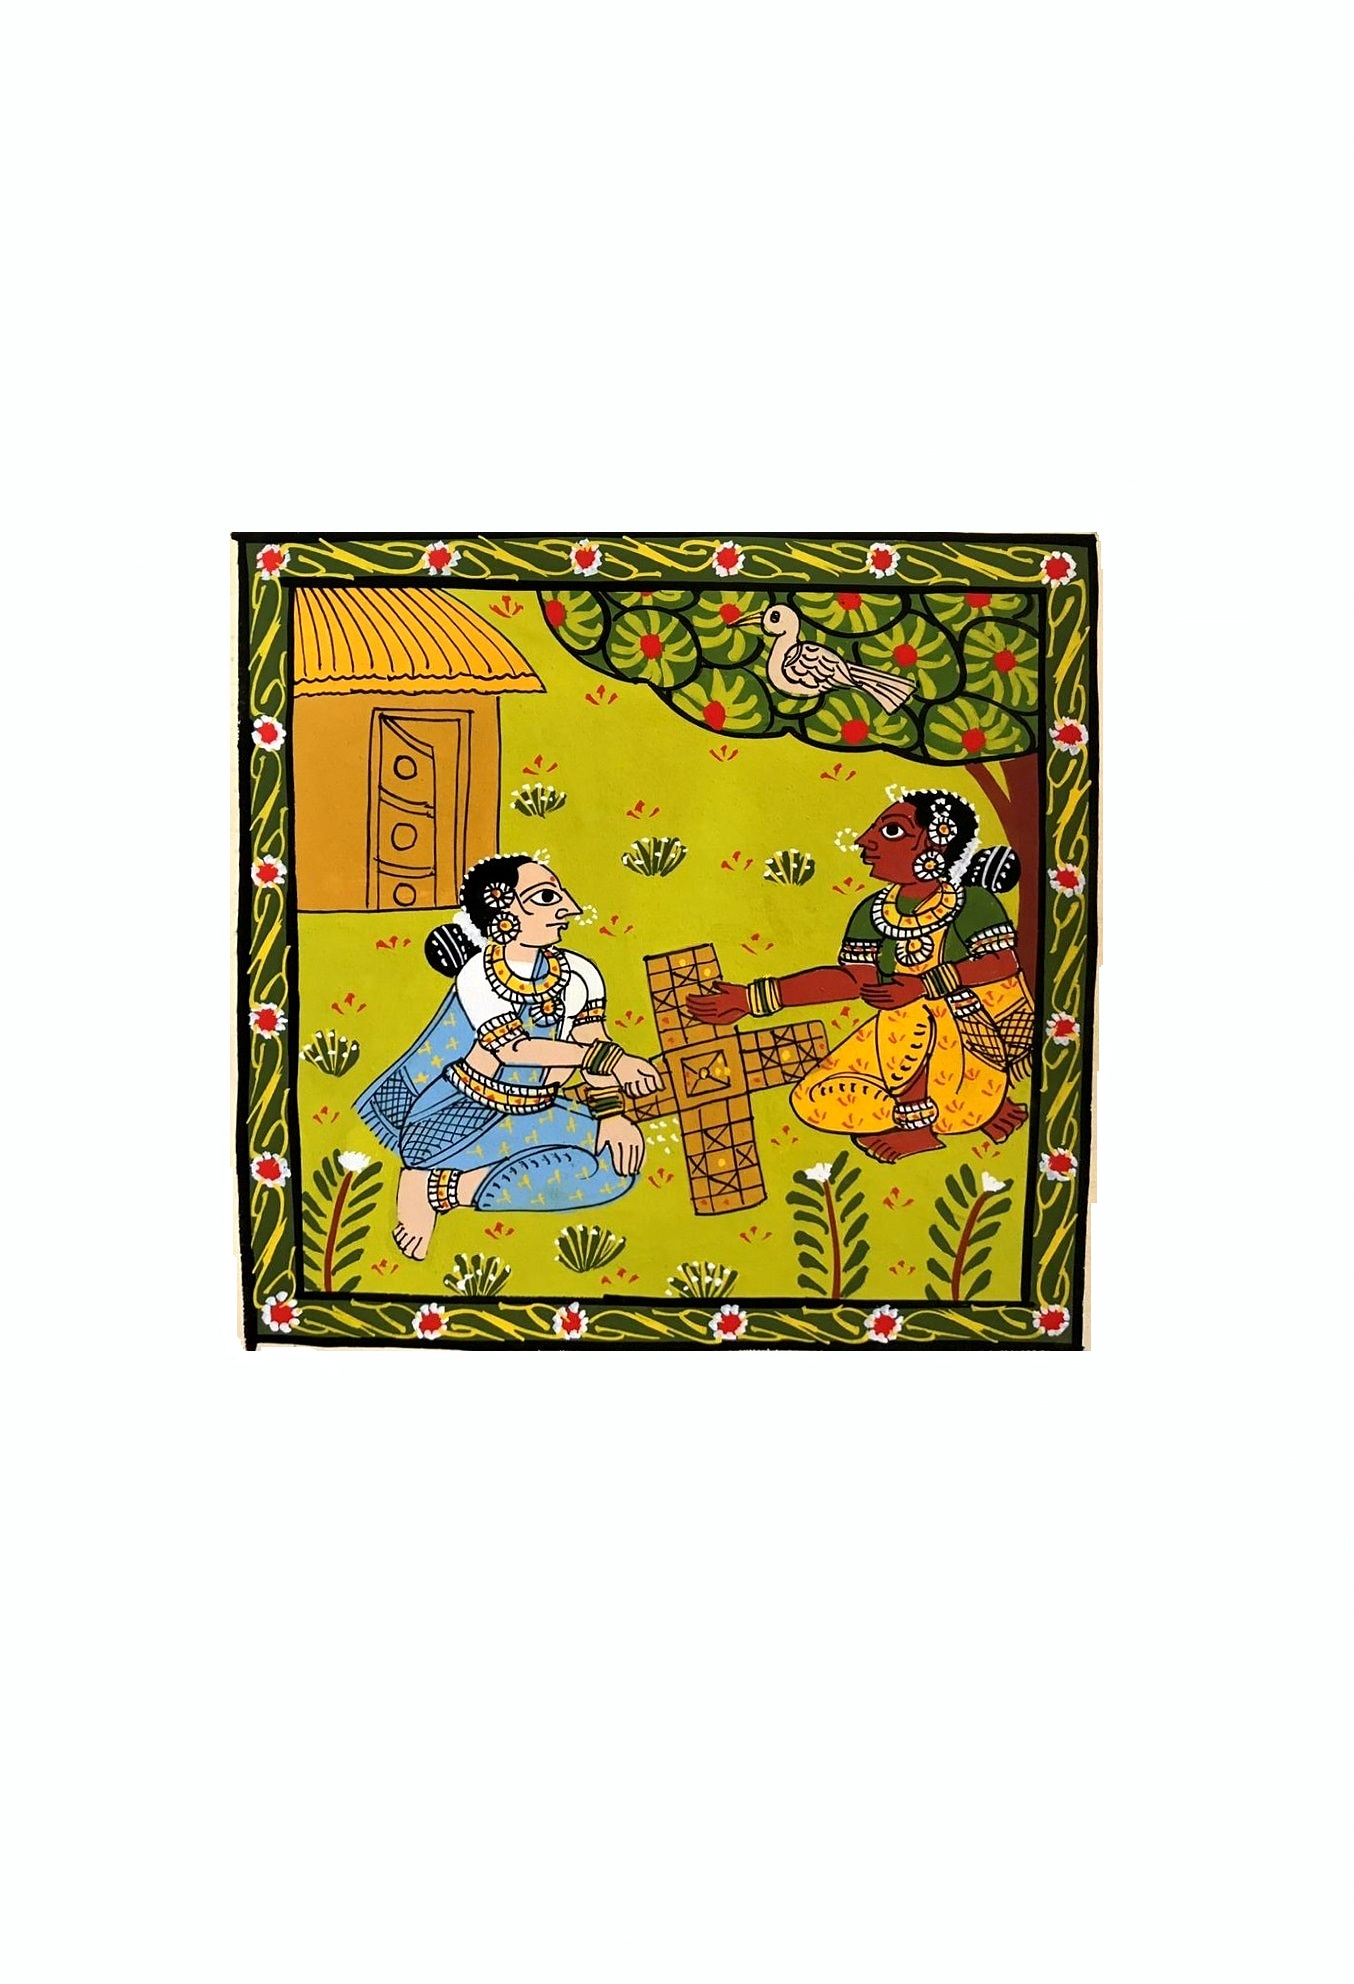 Village Women at Play in Cheriyal Painting